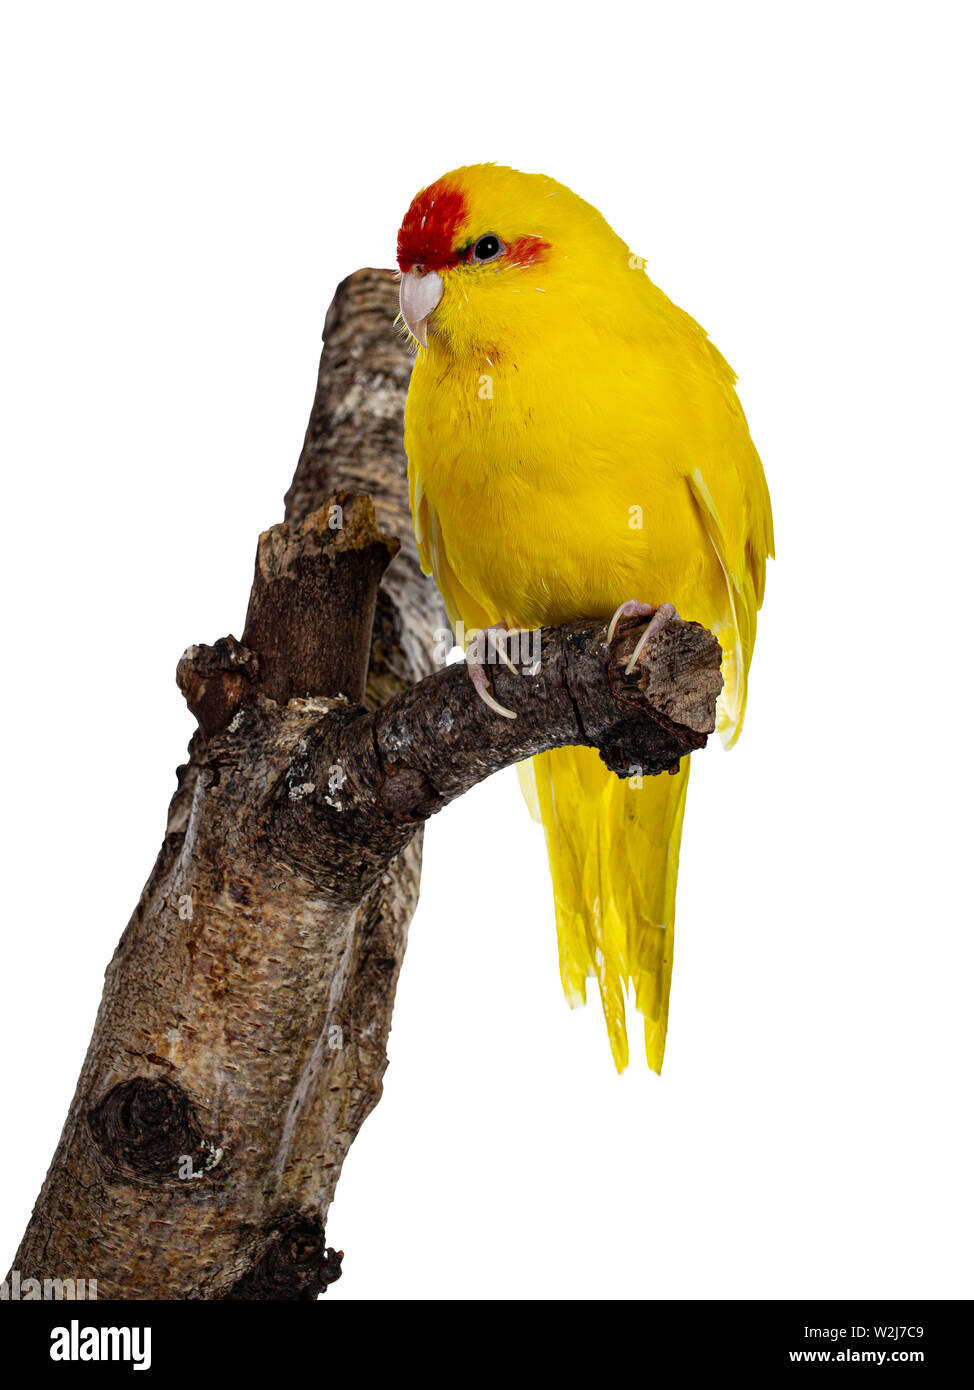 Red crowned yellow Kakariki bird, sitting side ways on branch of tree. Isolated on white background. - Stock Image